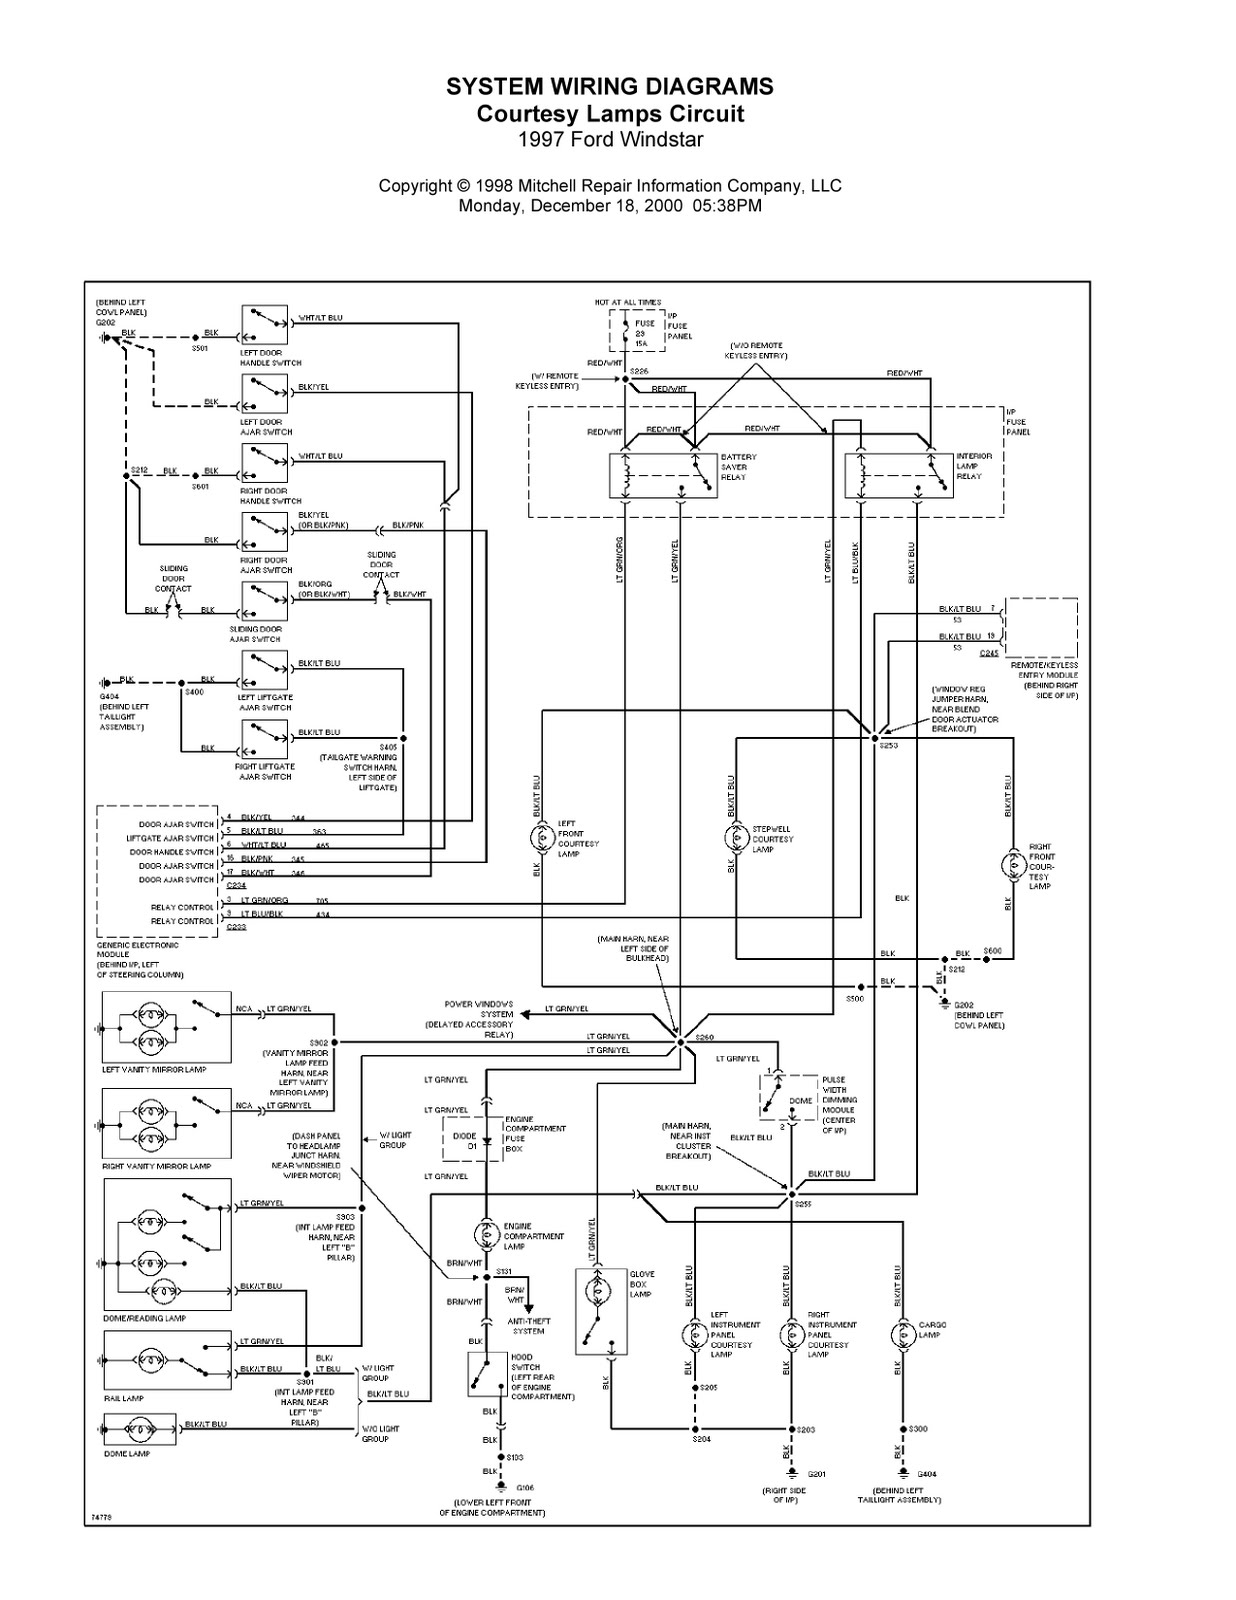 small resolution of 1997 ford windstar complete system wiring diagrams 2000 ford windstar electrical diagram 2001 ford windstar electrical